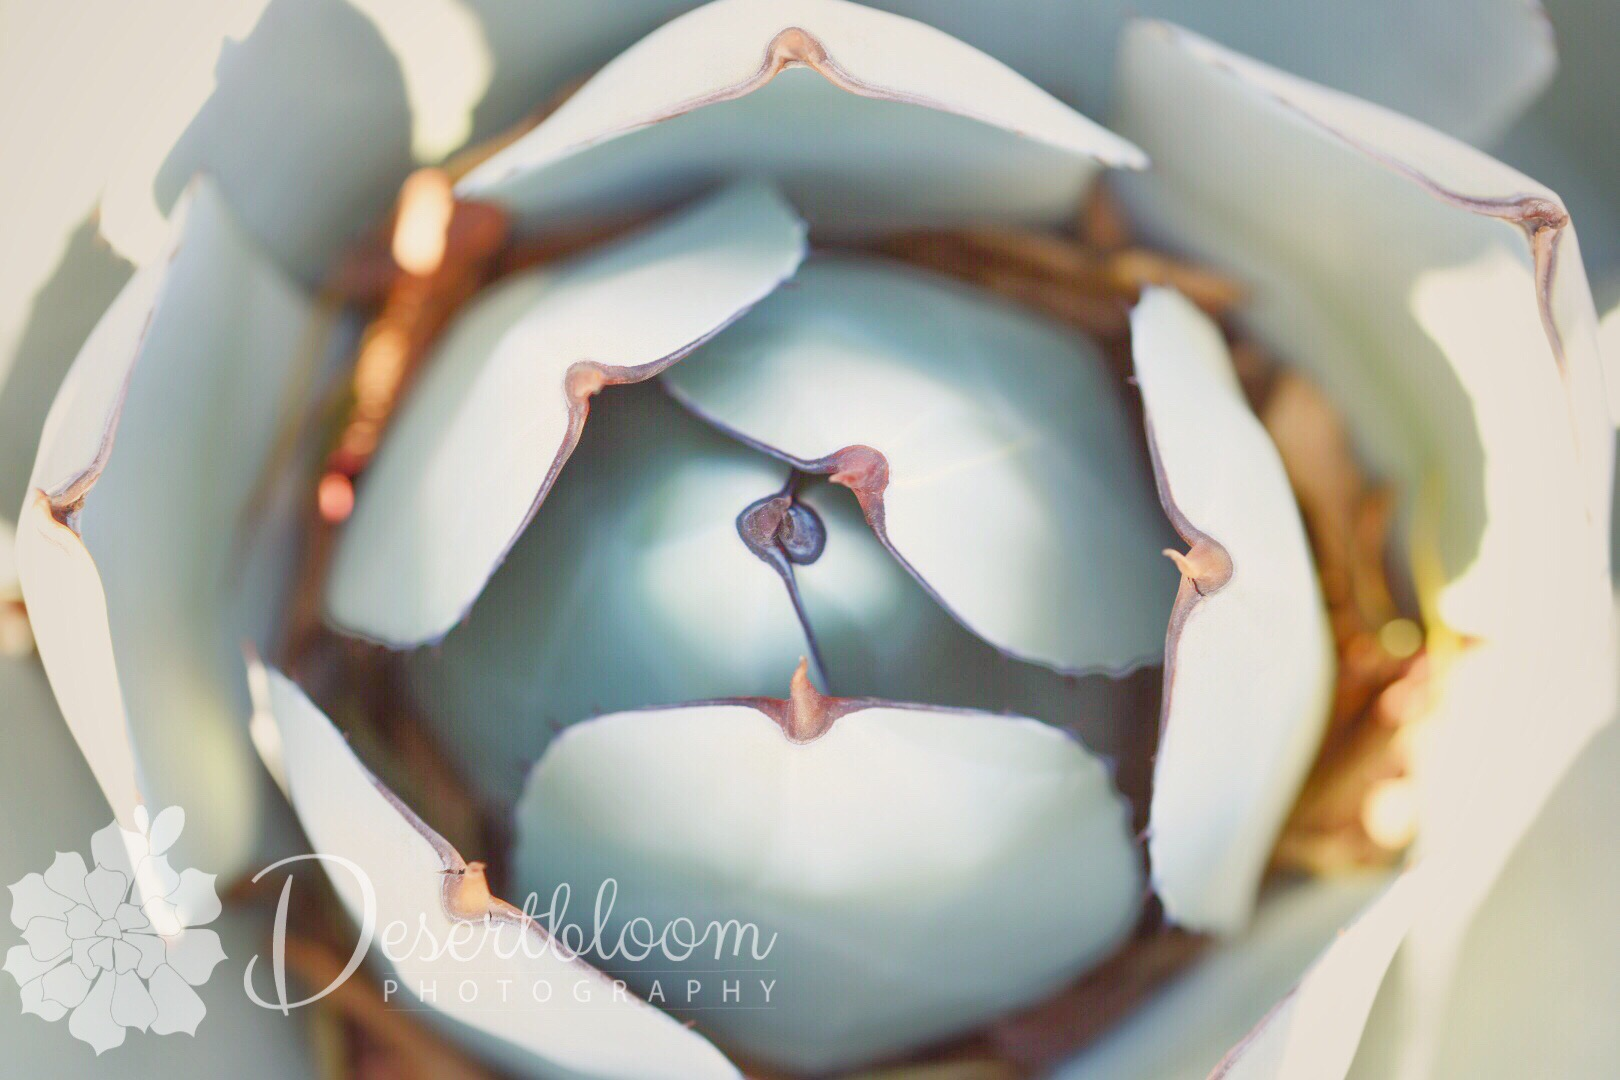 This desert succulent was soooooo pretty! I love symmetry in nature.